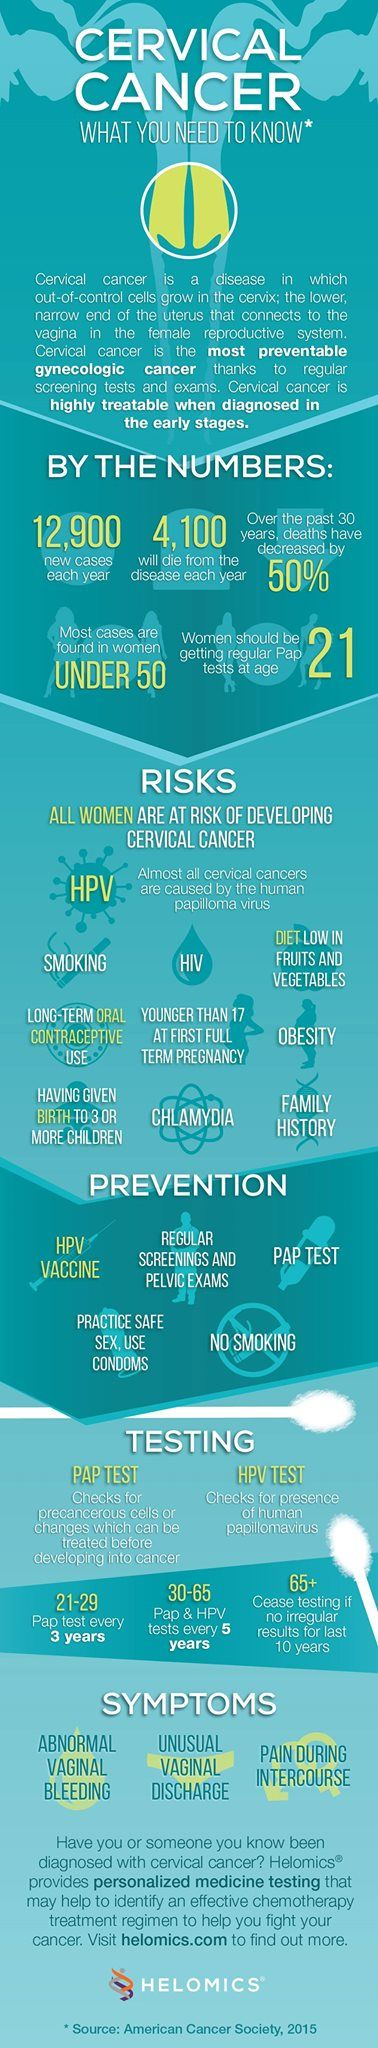 What you need to know about Cervical Cancer infographic. Cervical Cancer is the most preventable gynecological cancer with highly reliable screening tests, and is highly treatable in its early stages. Know the facts!